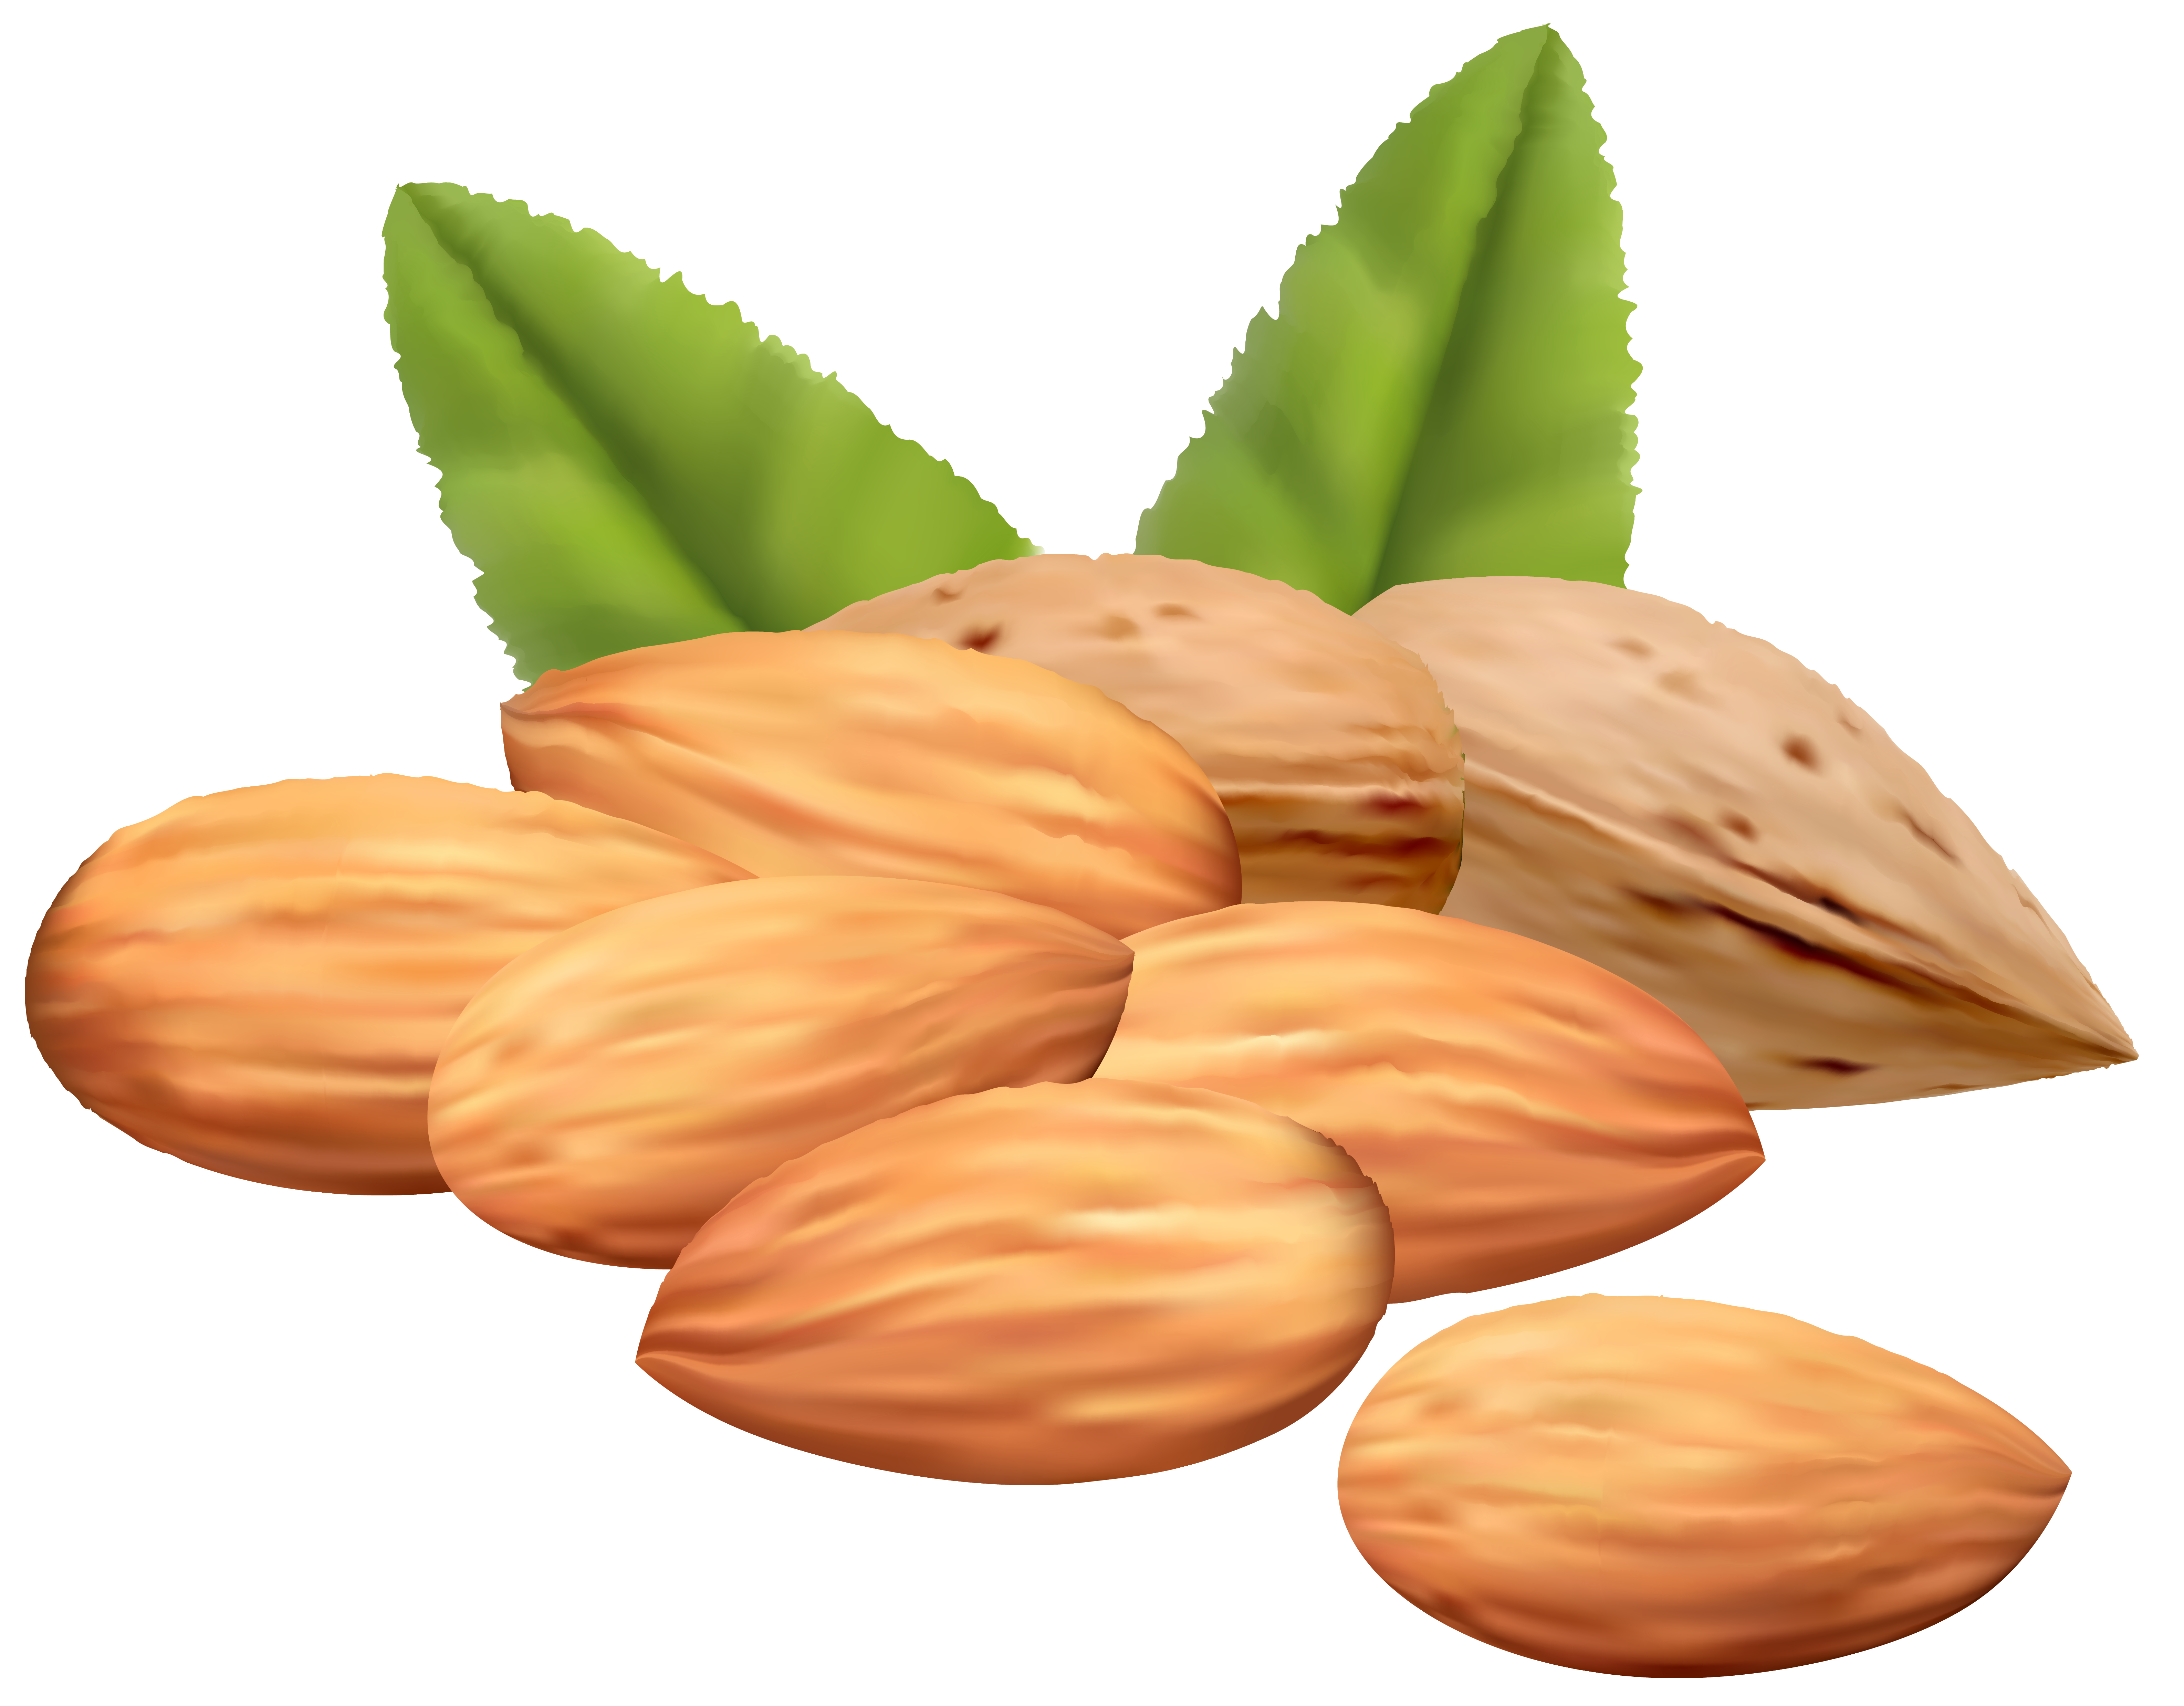 clipart Almond nuts png image. Nut clipart